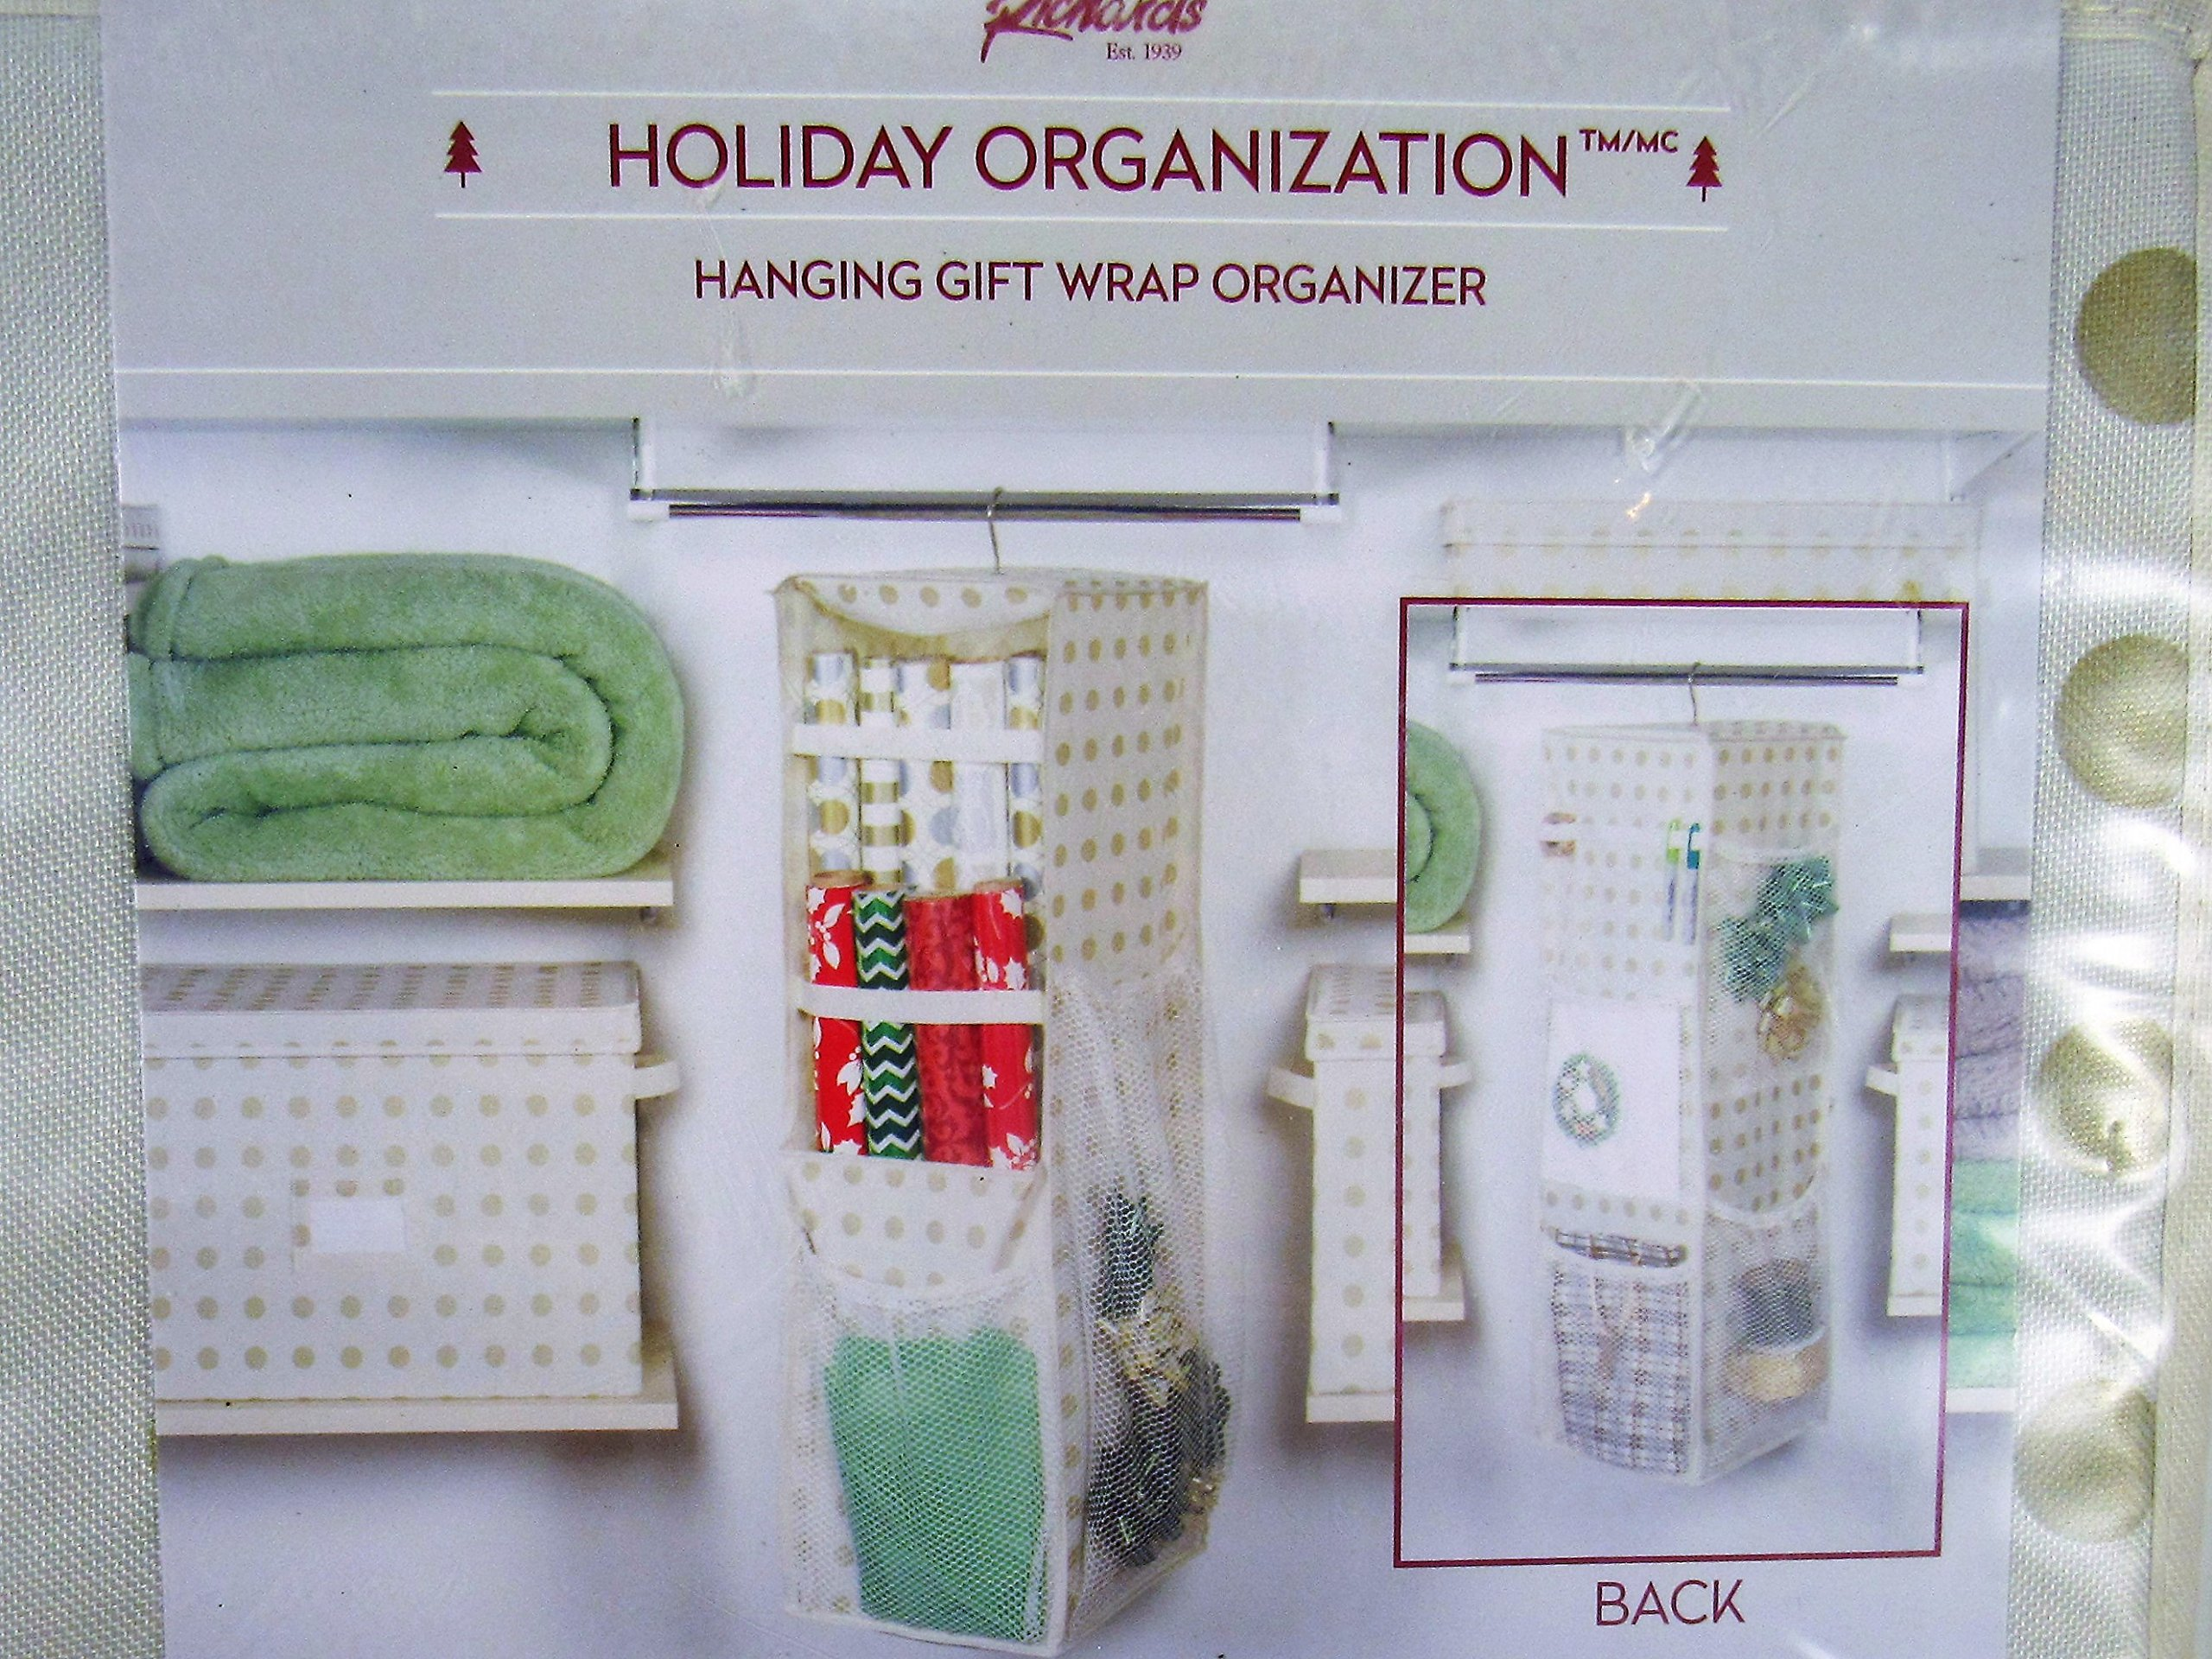 Richards Holiday Christmas Hanging Gift Wrap Organizer Holds Up to 25 Paper Rolls